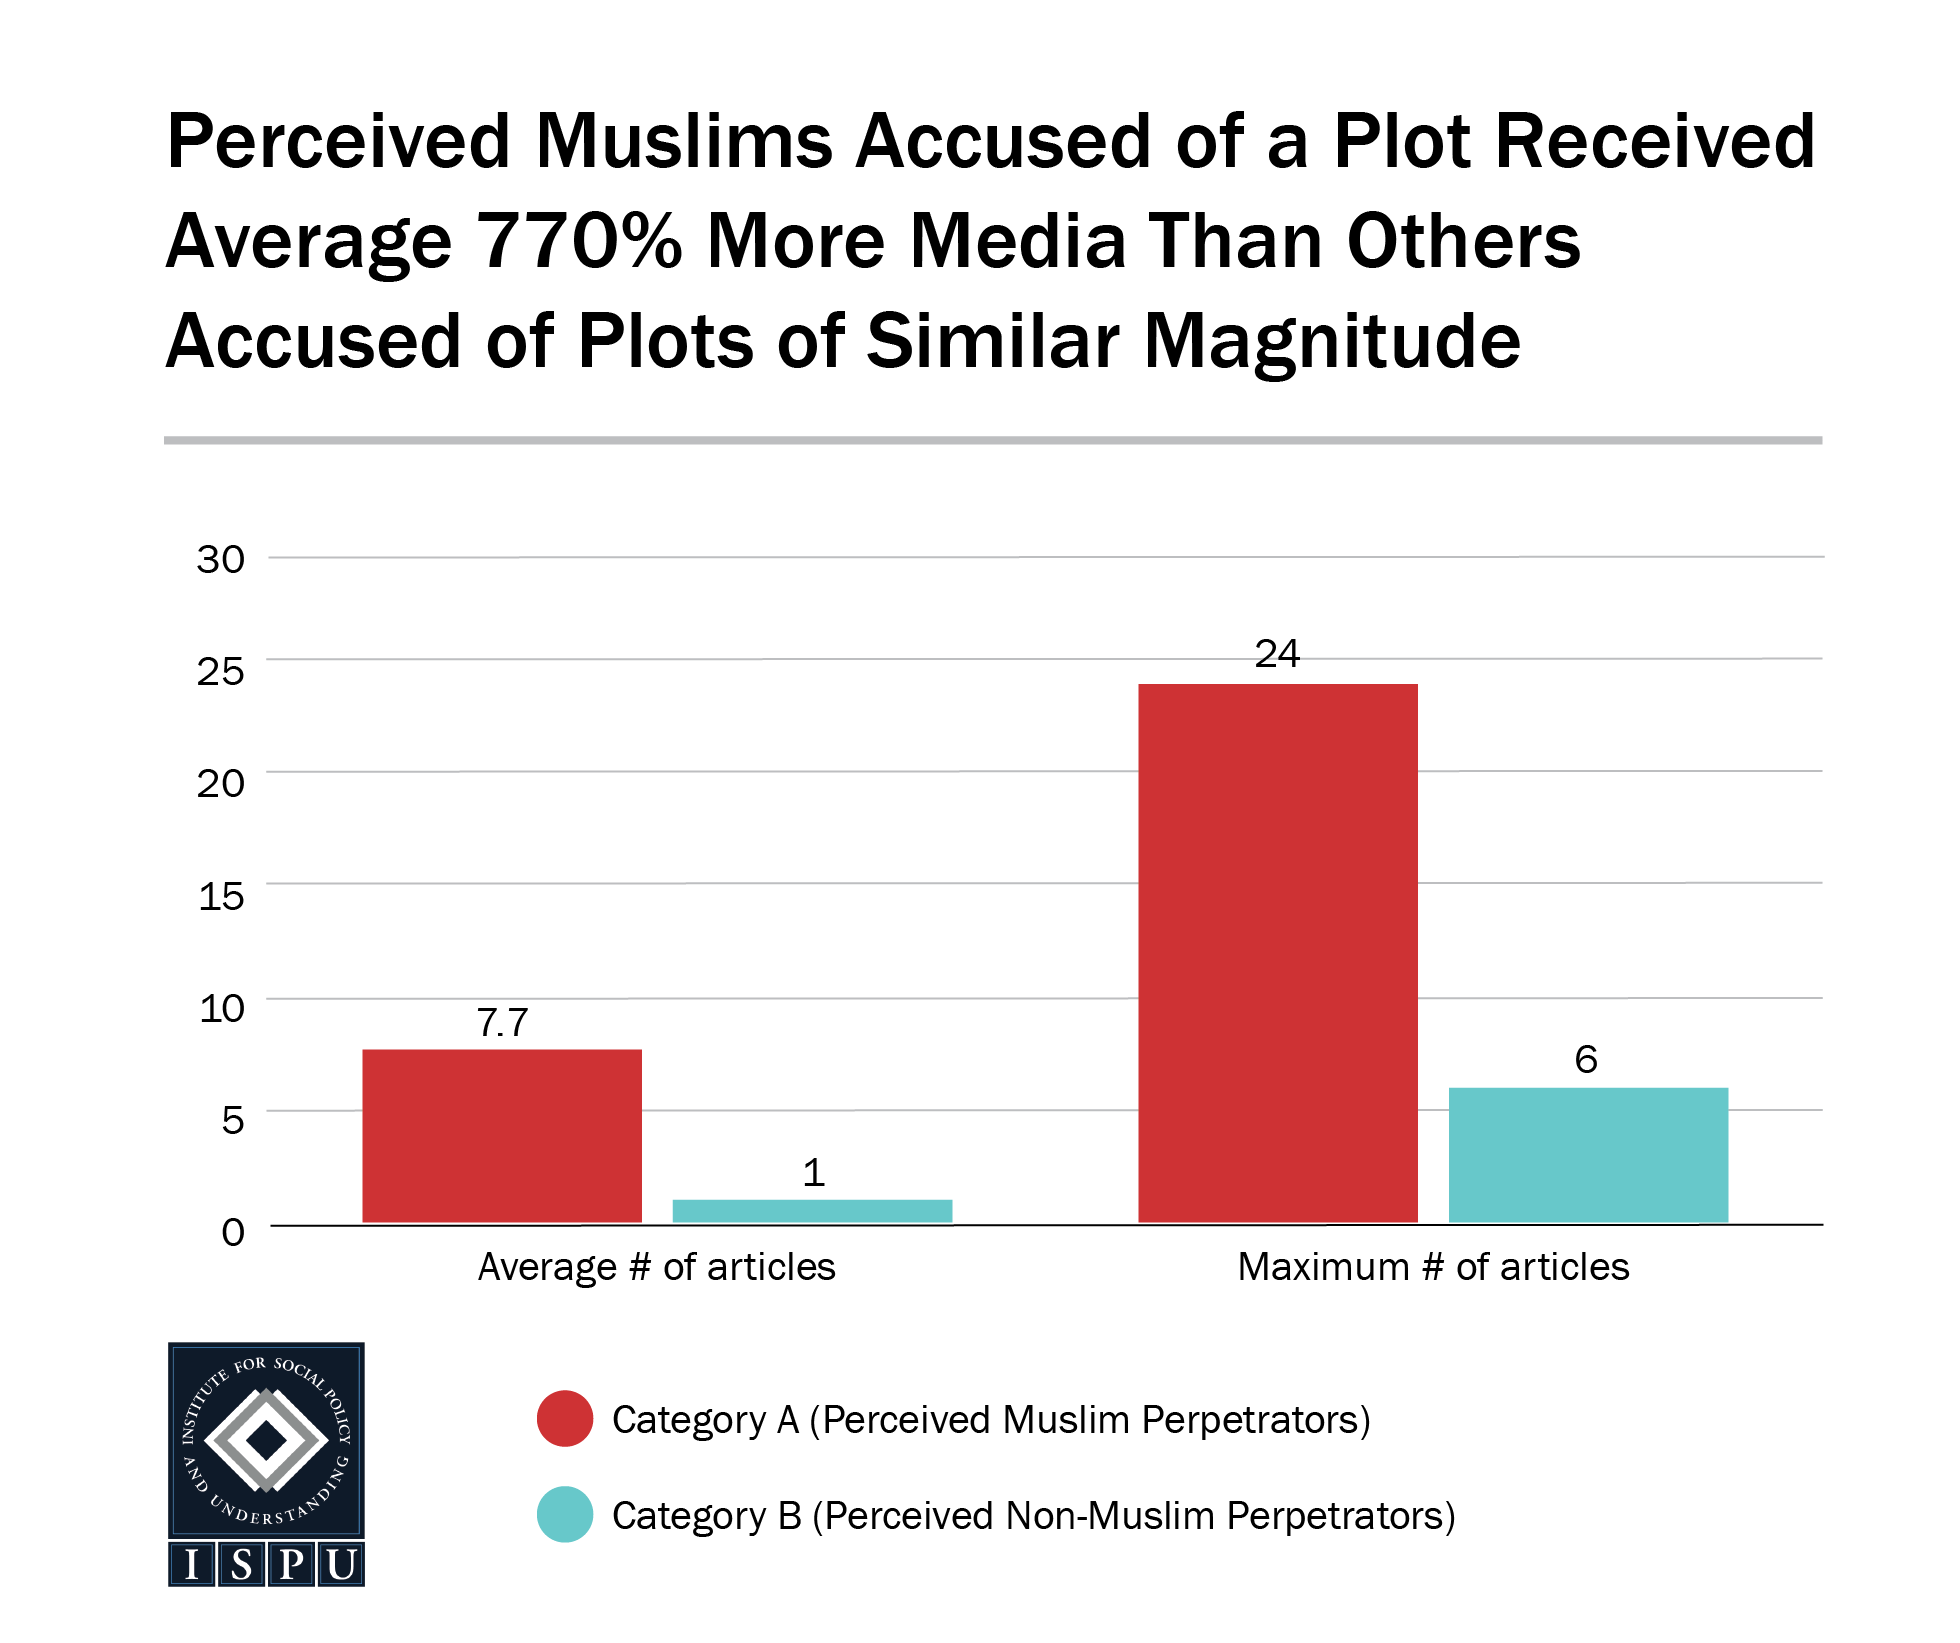 A bar graph showing perceived Muslims accused of a plot received on average 770% more media than others accused of plots of similar magnitude